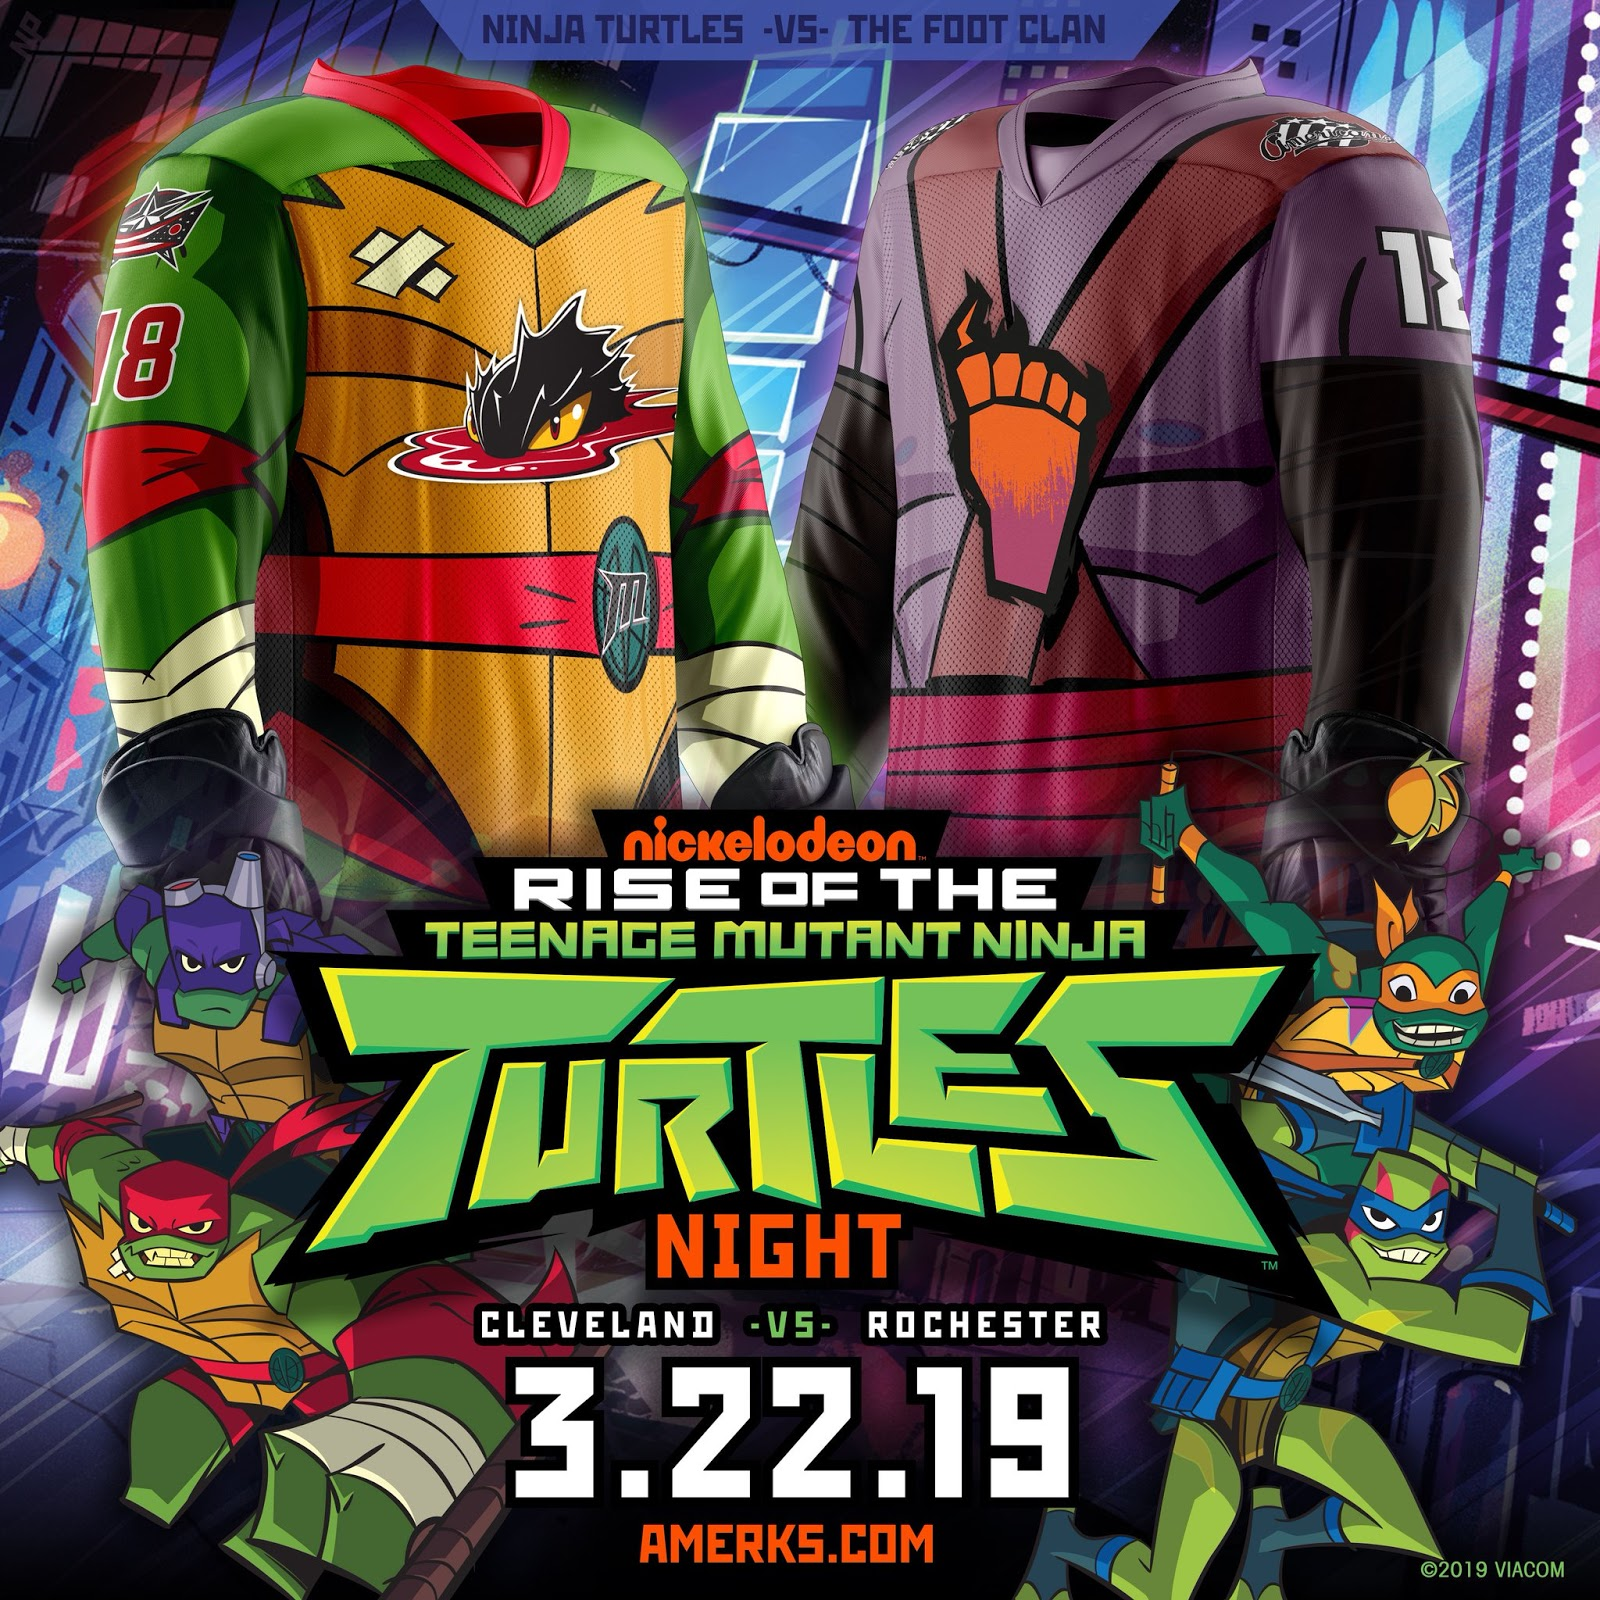 8a1c5c9773f ... Monsters, have announced a special two-game home-and-home series of  Nickelodeon Nights featuring the Nickelodeon's iconic Teenage Mutant Ninja  Turtles!